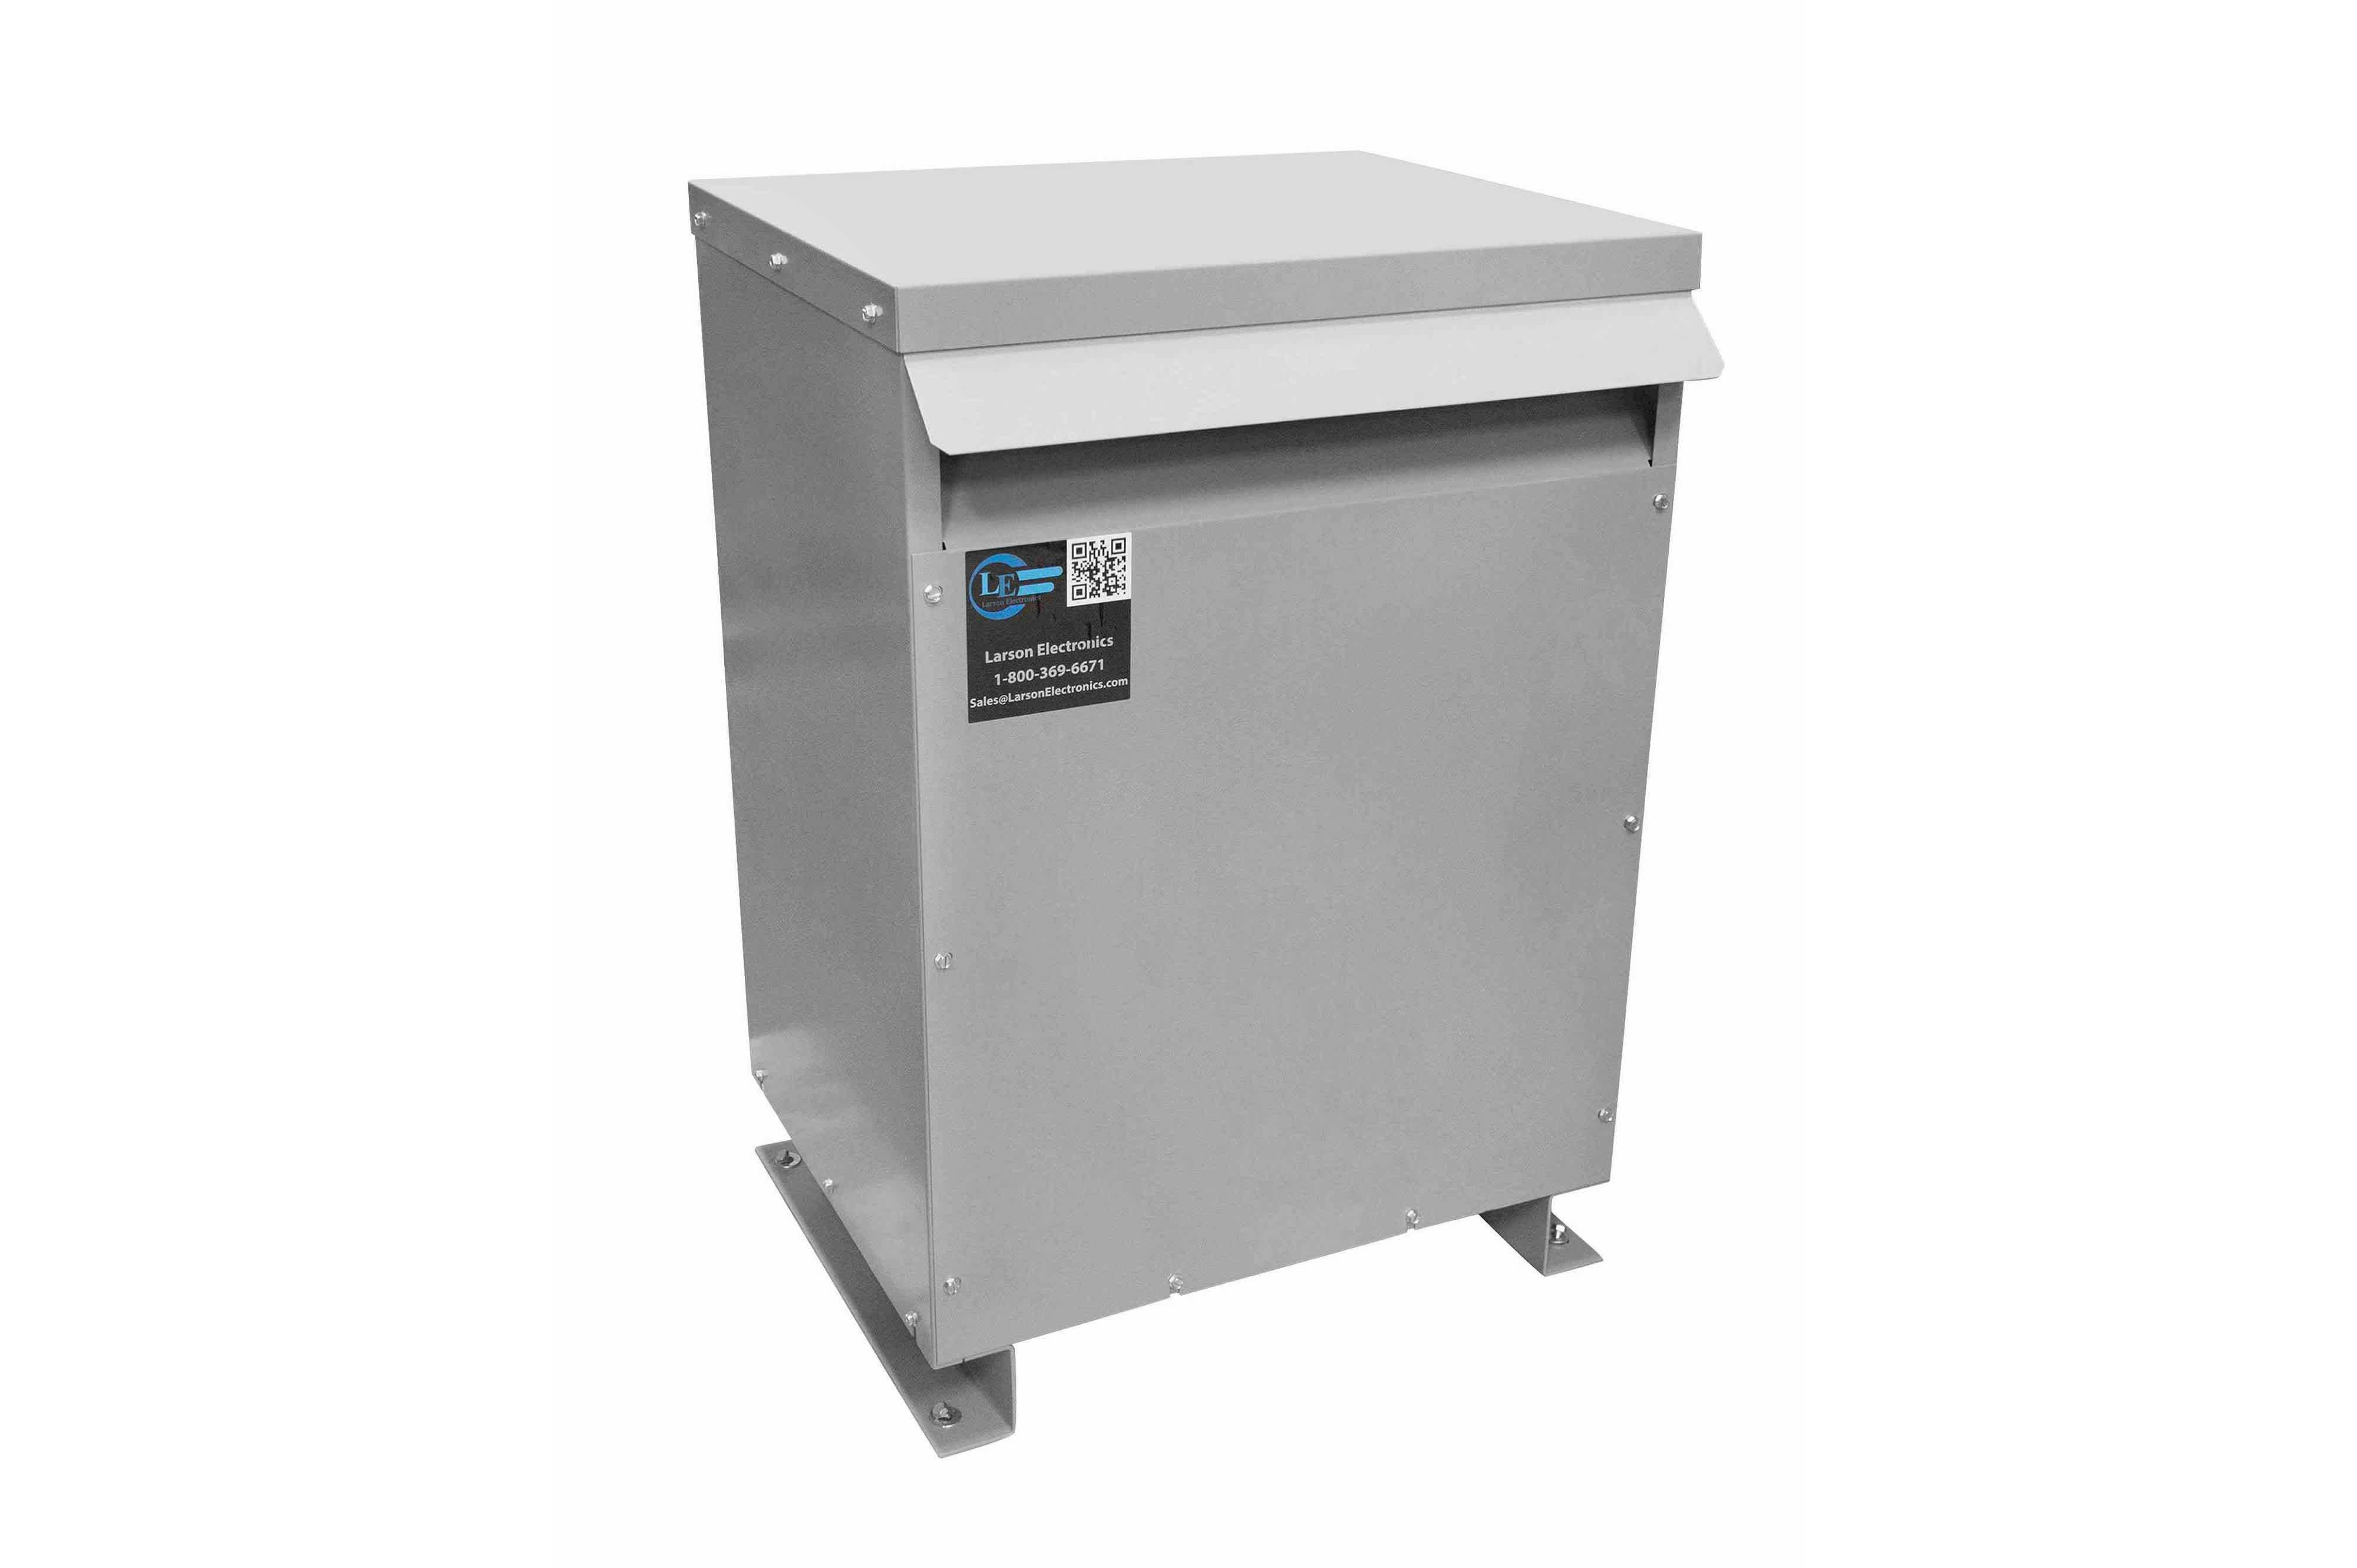 10 kVA 3PH DOE Transformer, 240V Delta Primary, 380Y/220 Wye-N Secondary, N3R, Ventilated, 60 Hz